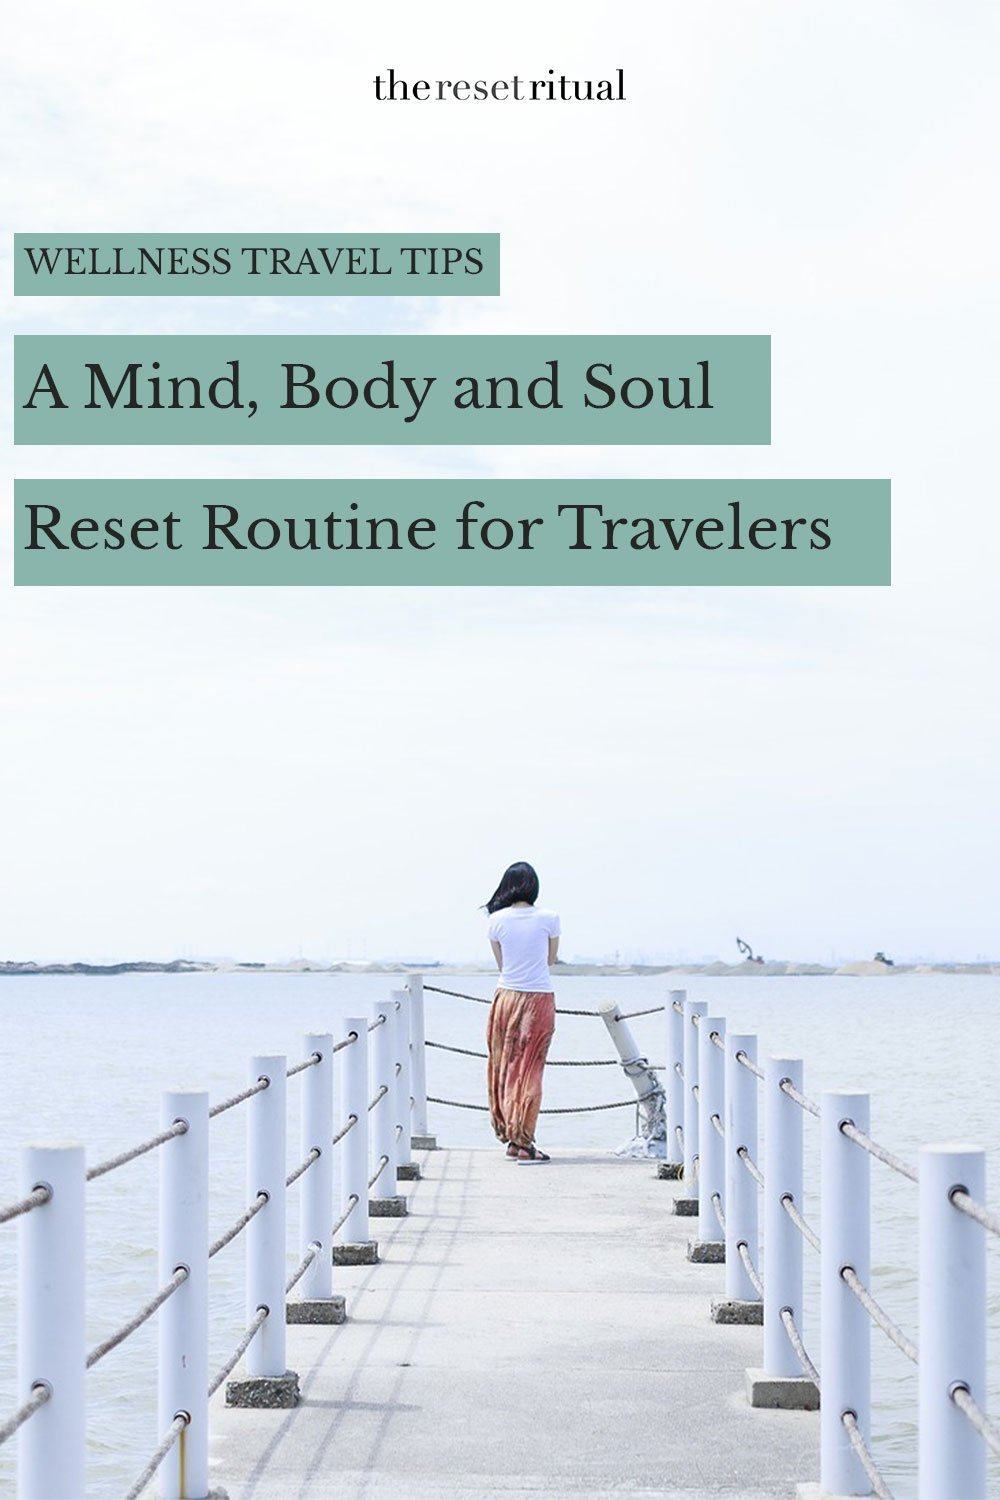 Wellness travel tips: A simple reset routine for travelers. Exploring a new place is a powerful way to hit the reset button on life. This plan can be used as a morning routine to embrace the power of perspective and rejuvenate your mind, body and soul. #wellnesstravel #reset #selfcare